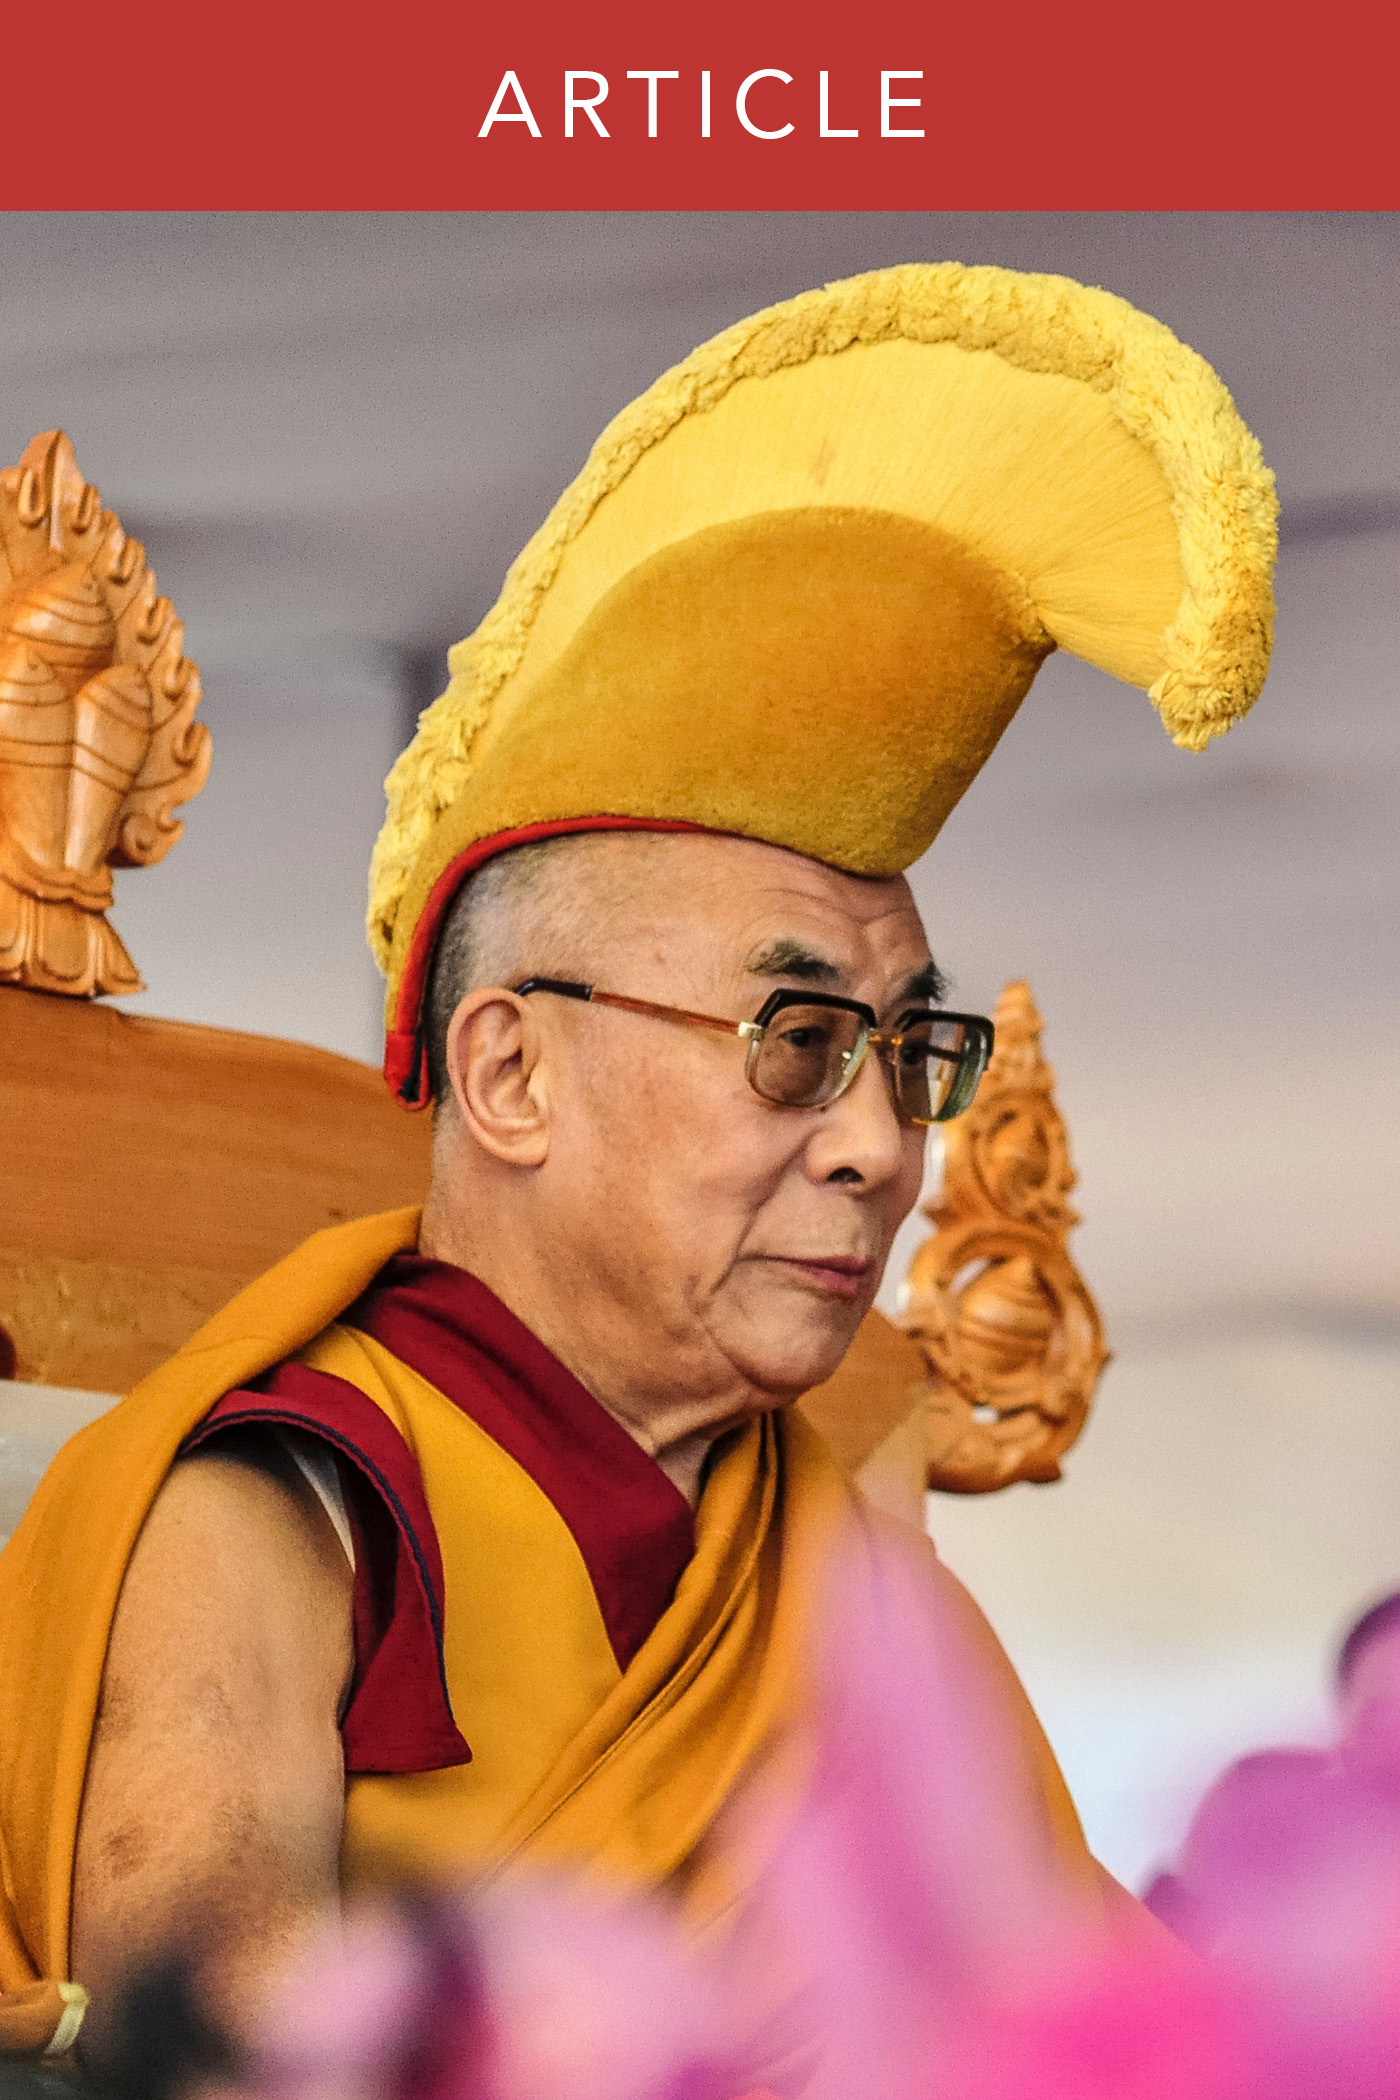 The Dalai Lama's Daily Schedule